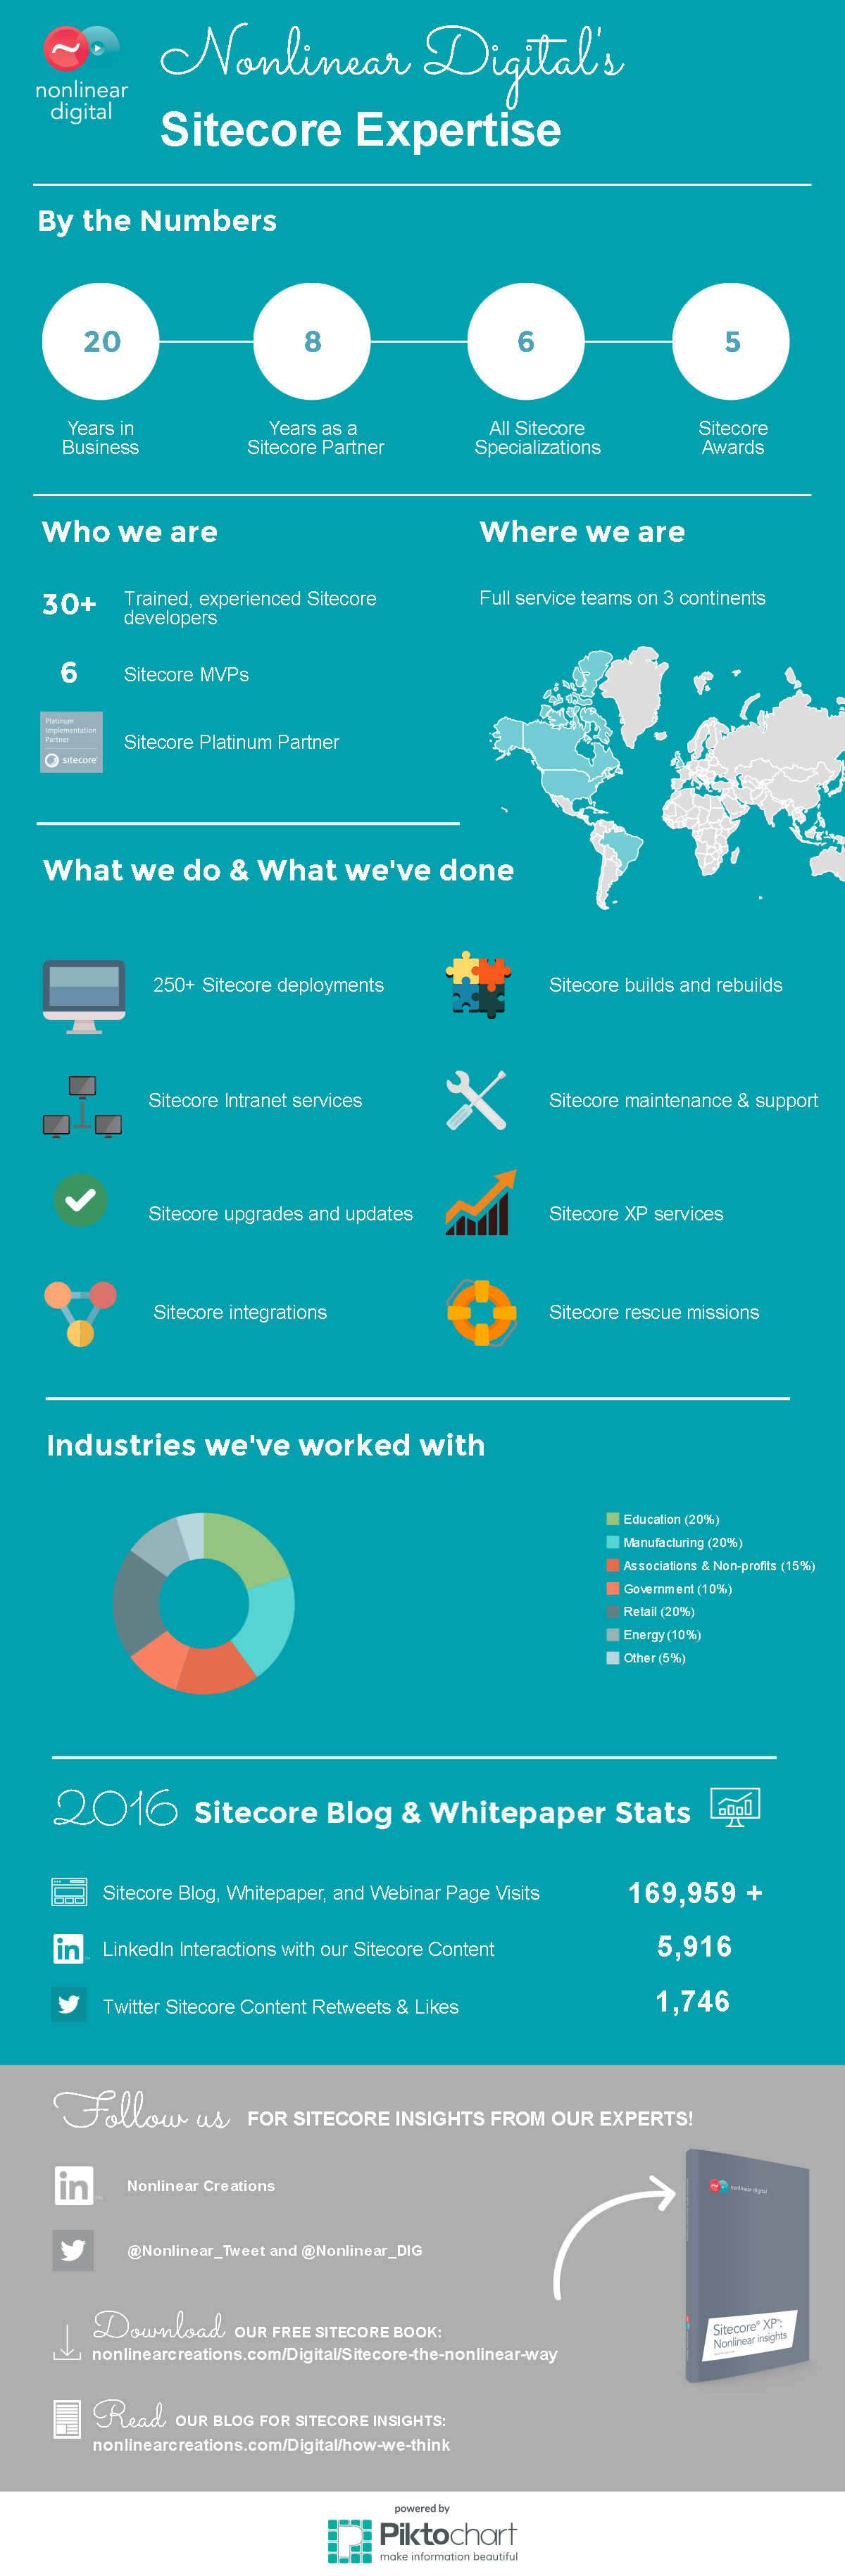 Infographic Nonlinear Digital Sitecore Expertise and Stats